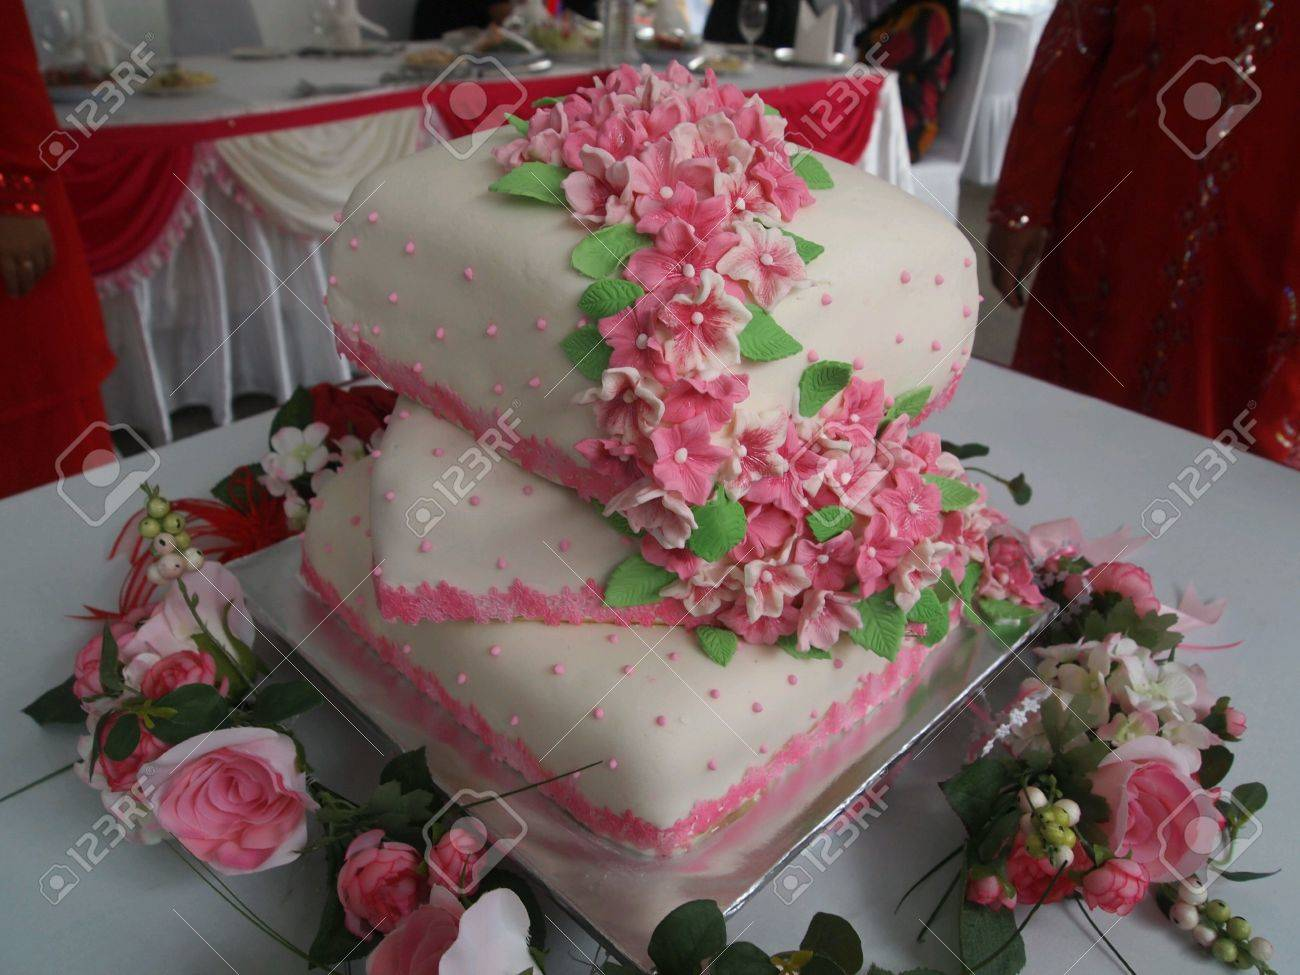 Pink And White 3 Tiers Wedding Cake Stock Photo Picture And Royalty